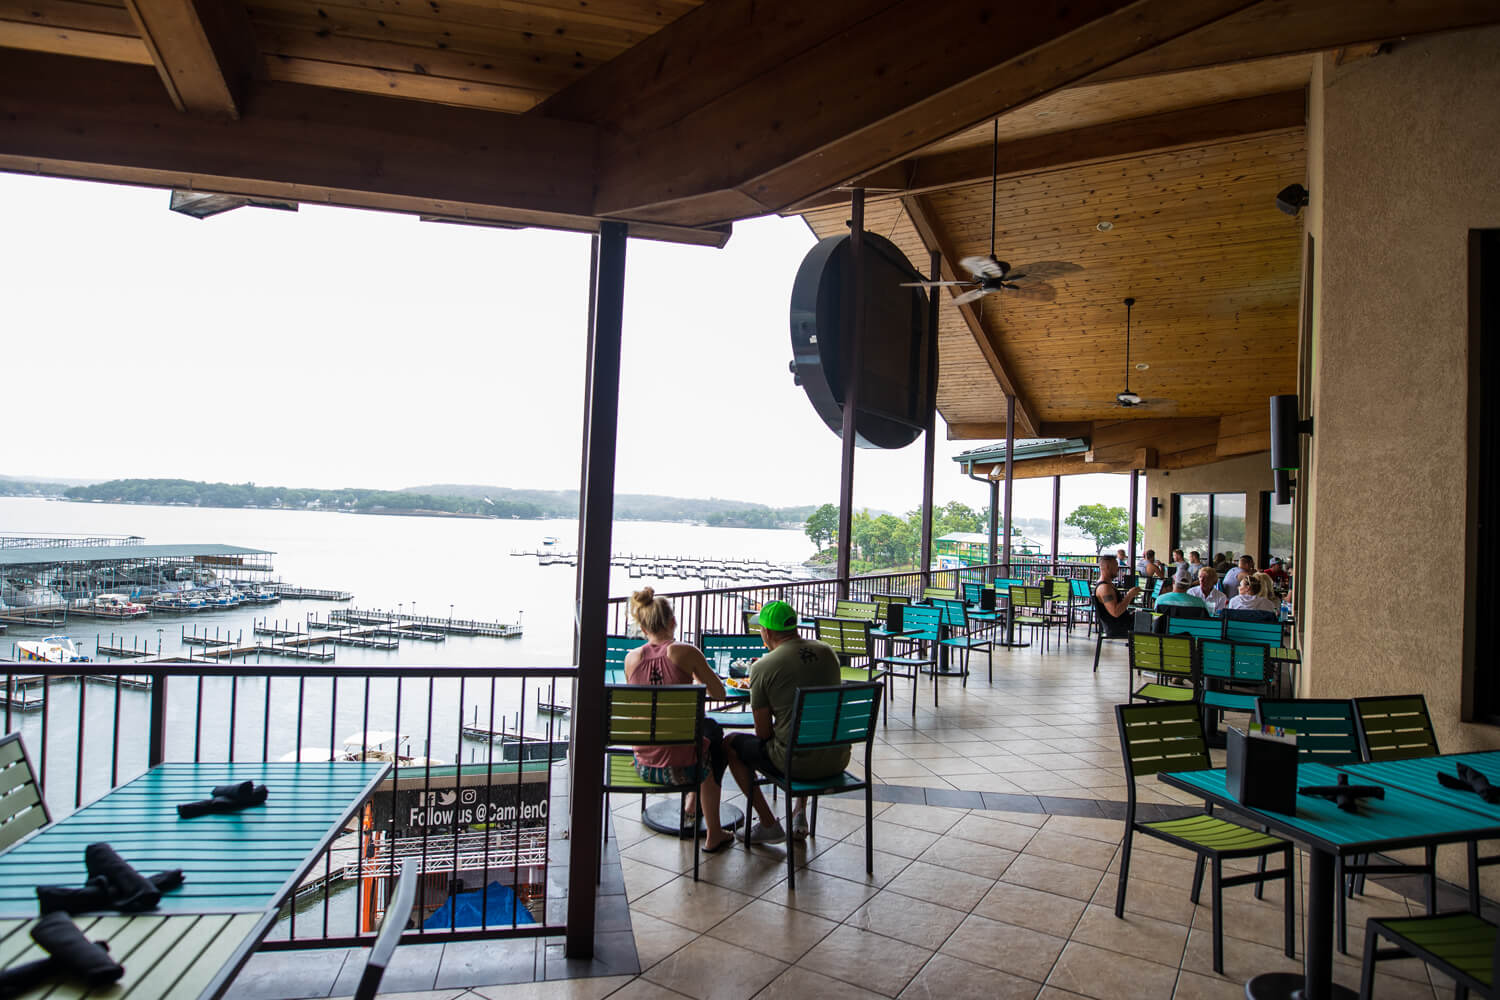 Patio seating with view of the Lake of the Ozarks at H Toads Bar and Grill